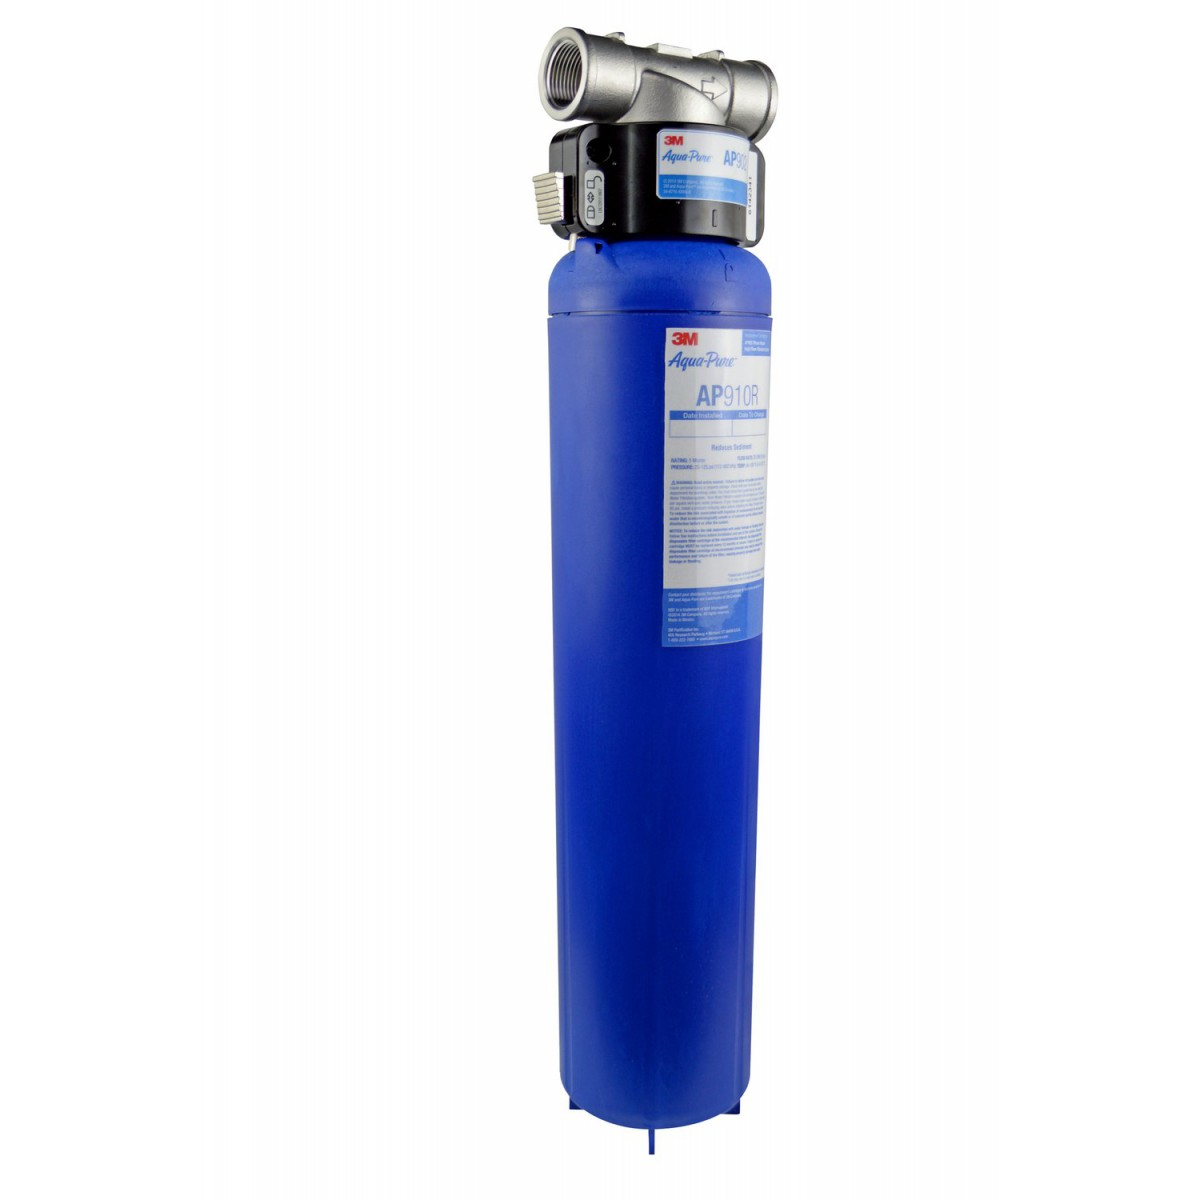 3m aqua pure ap902 whole house water filter - Whole House Water Filtration